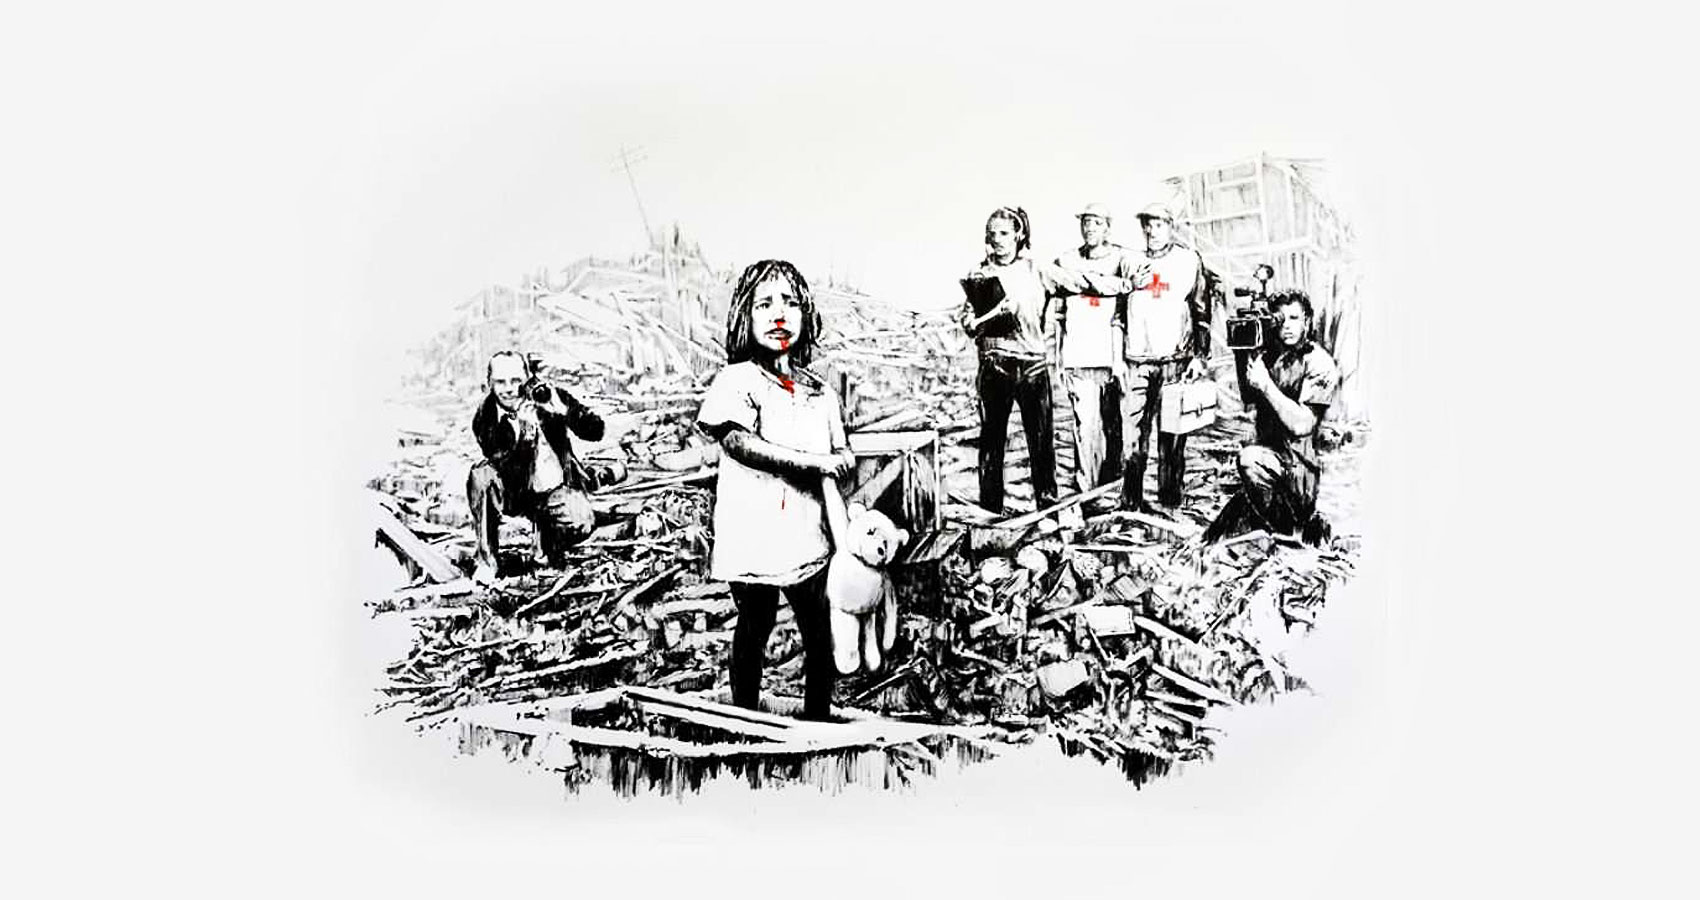 Syria and Child by Giorgia Spurio at Spillwords.com